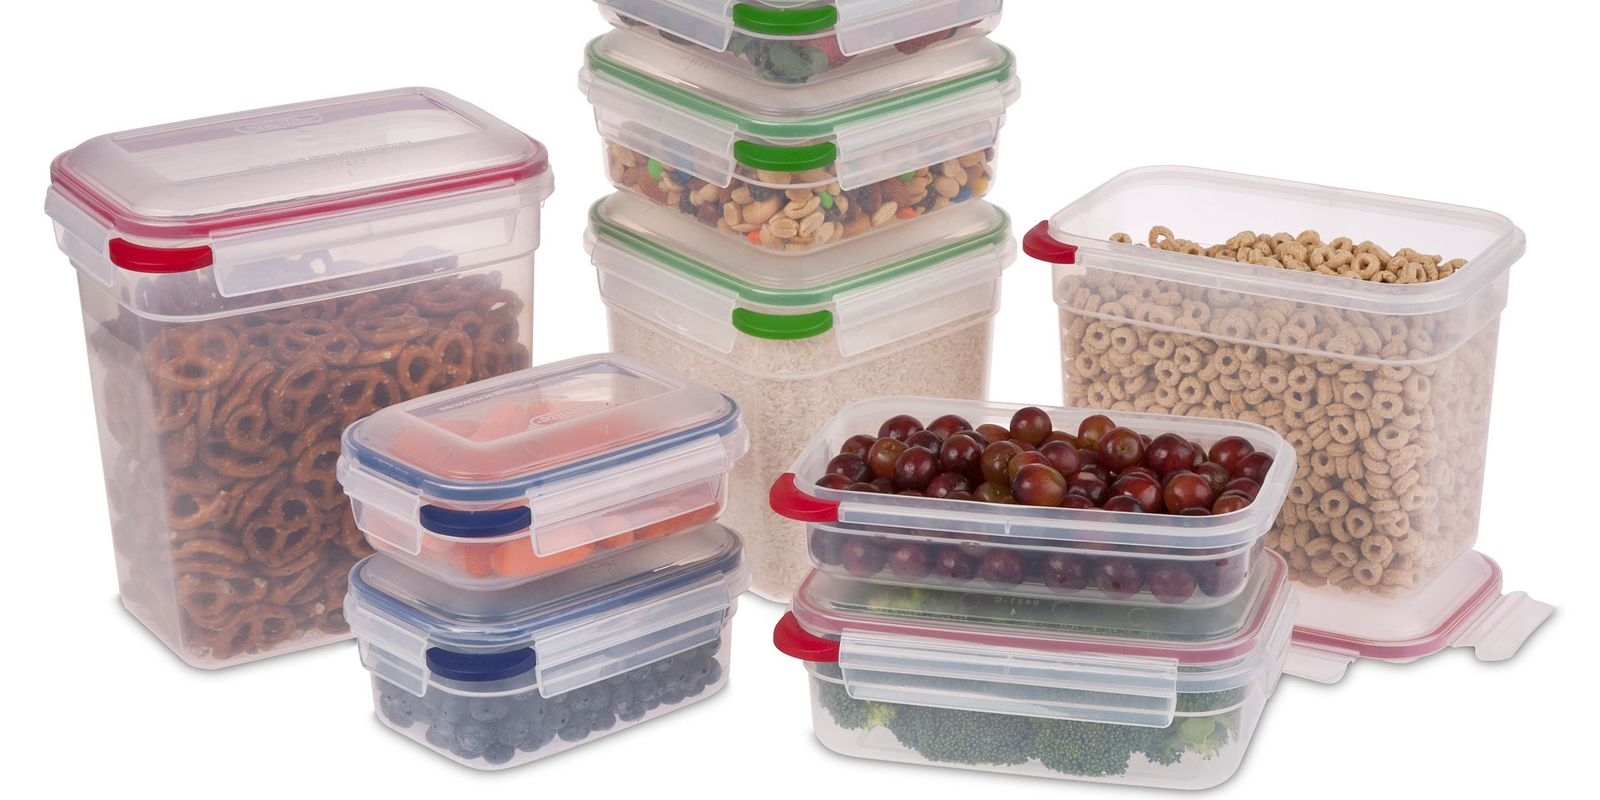 food storage container reviews - best food storage containers